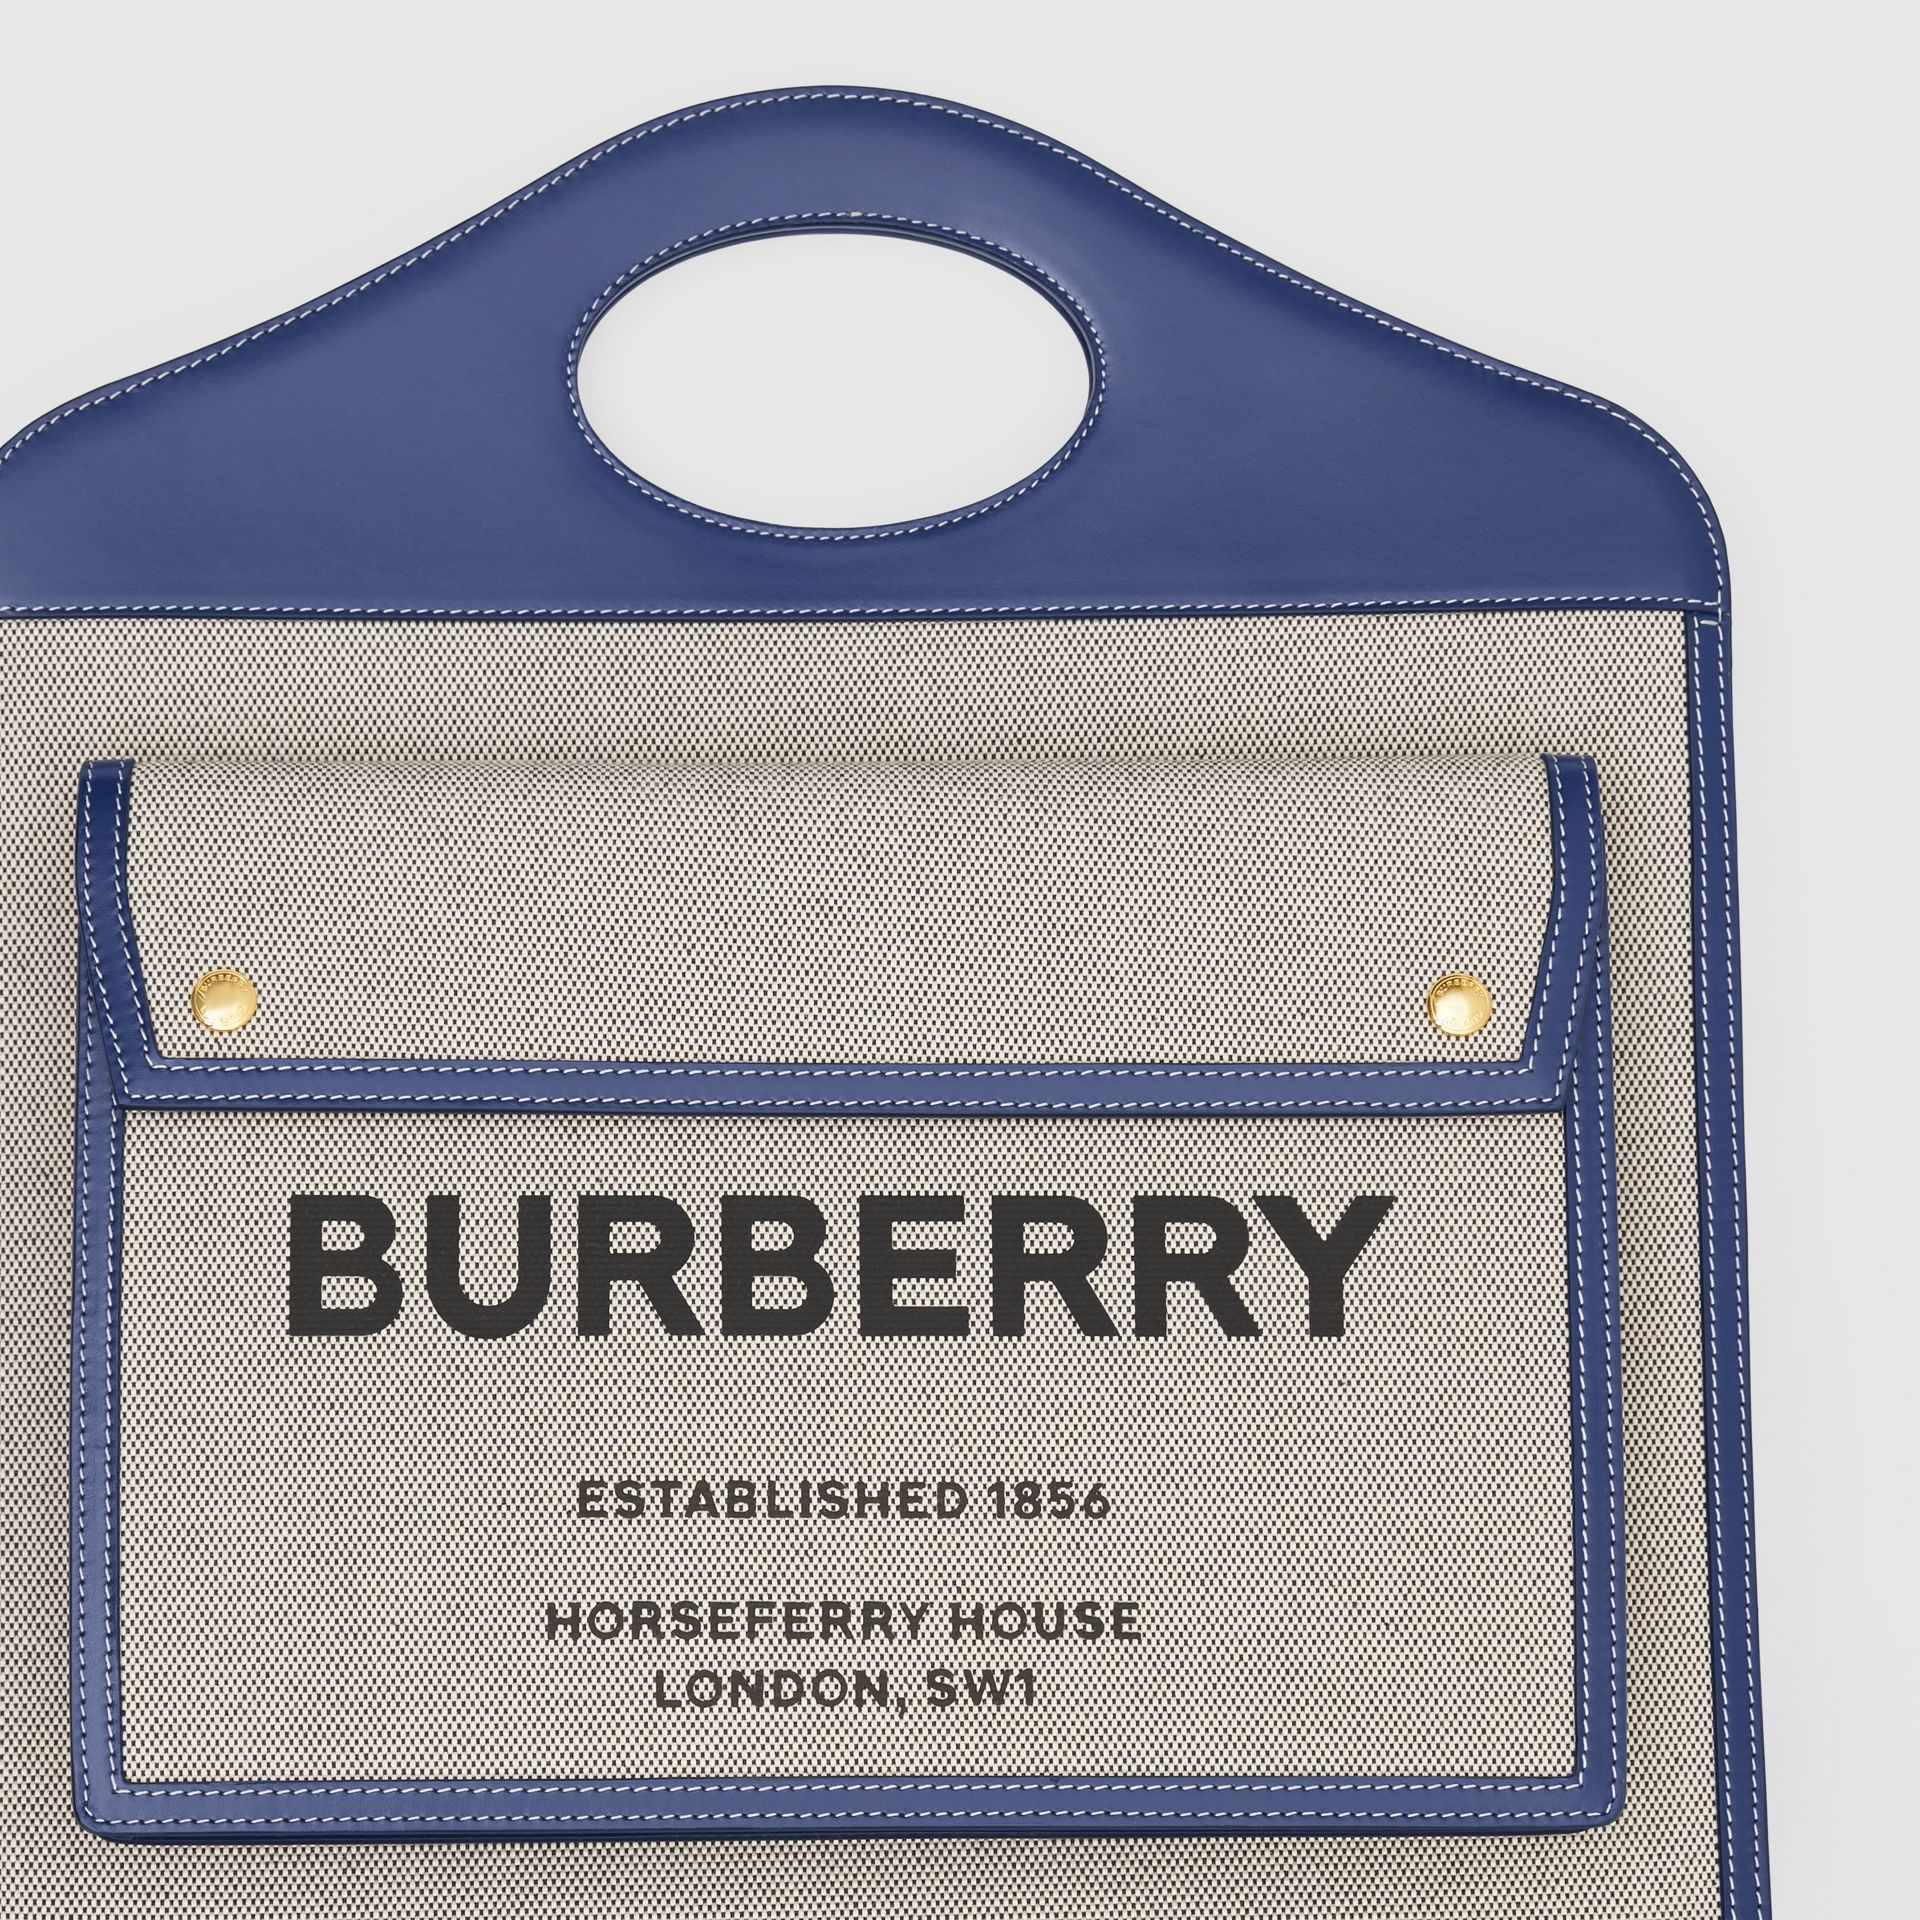 Medium Two-tone Canvas and Leather Pocket Bag in Ink Navy - Women | Burberry United Kingdom - gallery image 1